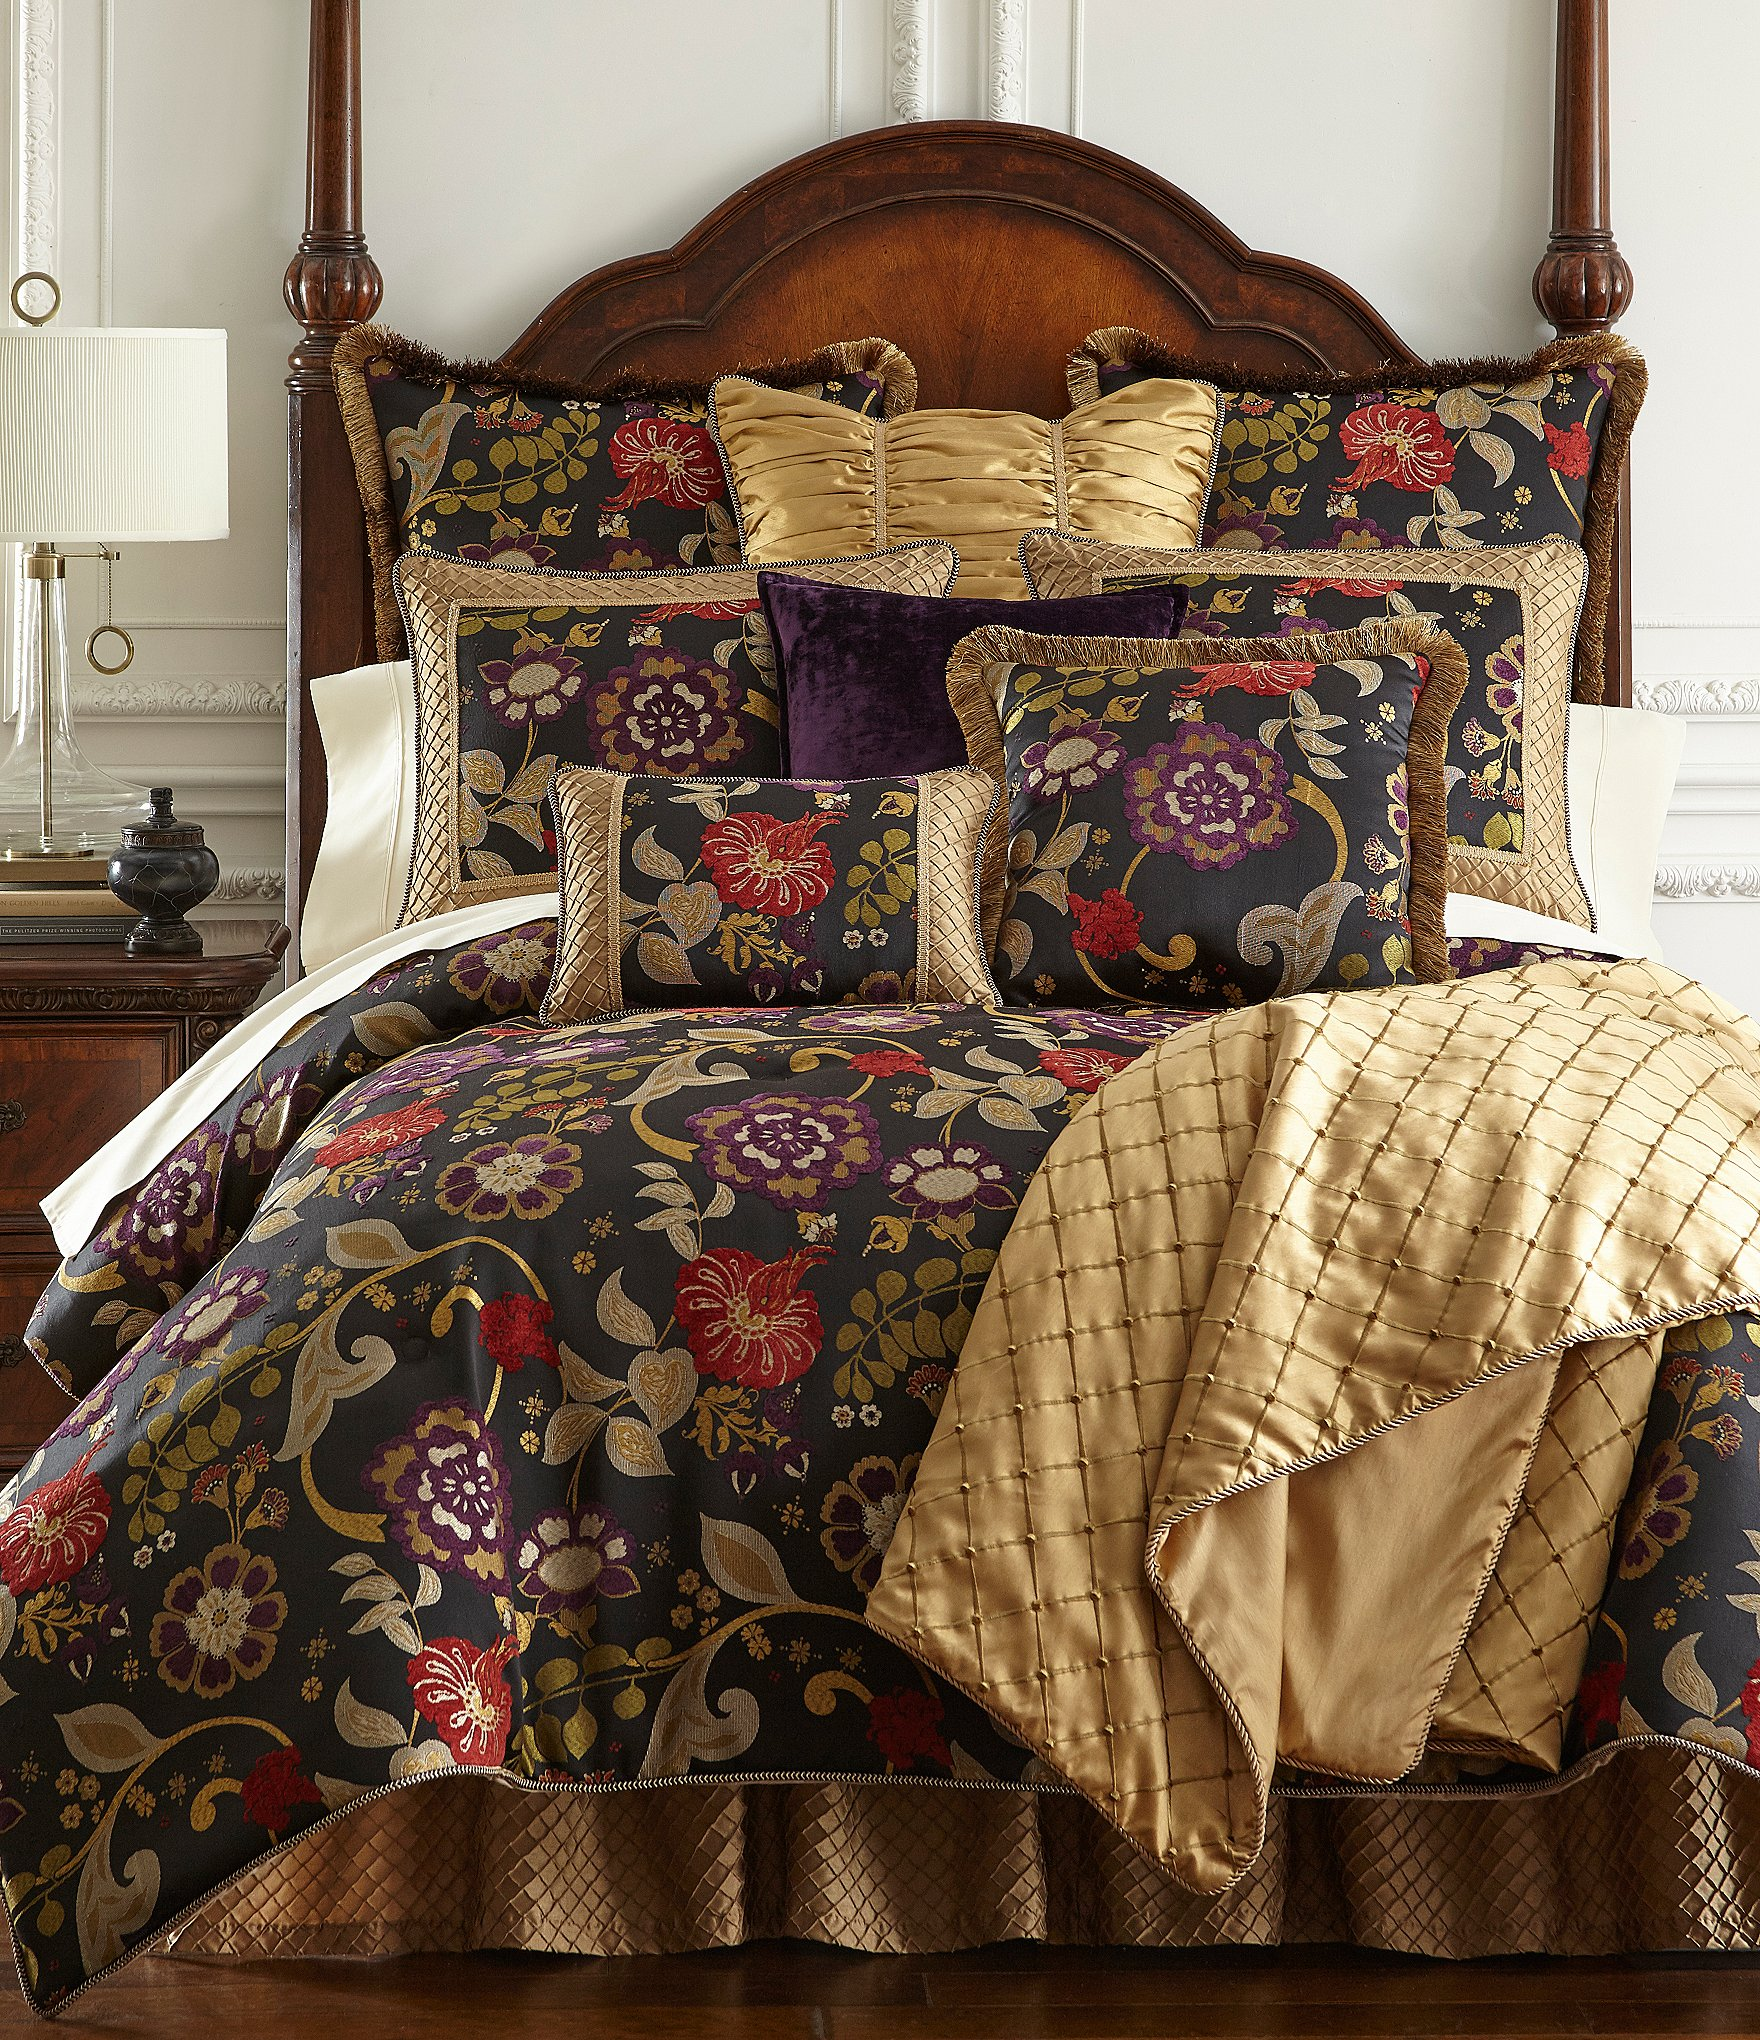 Shop for Southern Living Bedding & Bedding Collections| Dillard's at ustubes.ml Visit ustubes.ml to find clothing, accessories, shoes, cosmetics & more. The Style of Your Life.